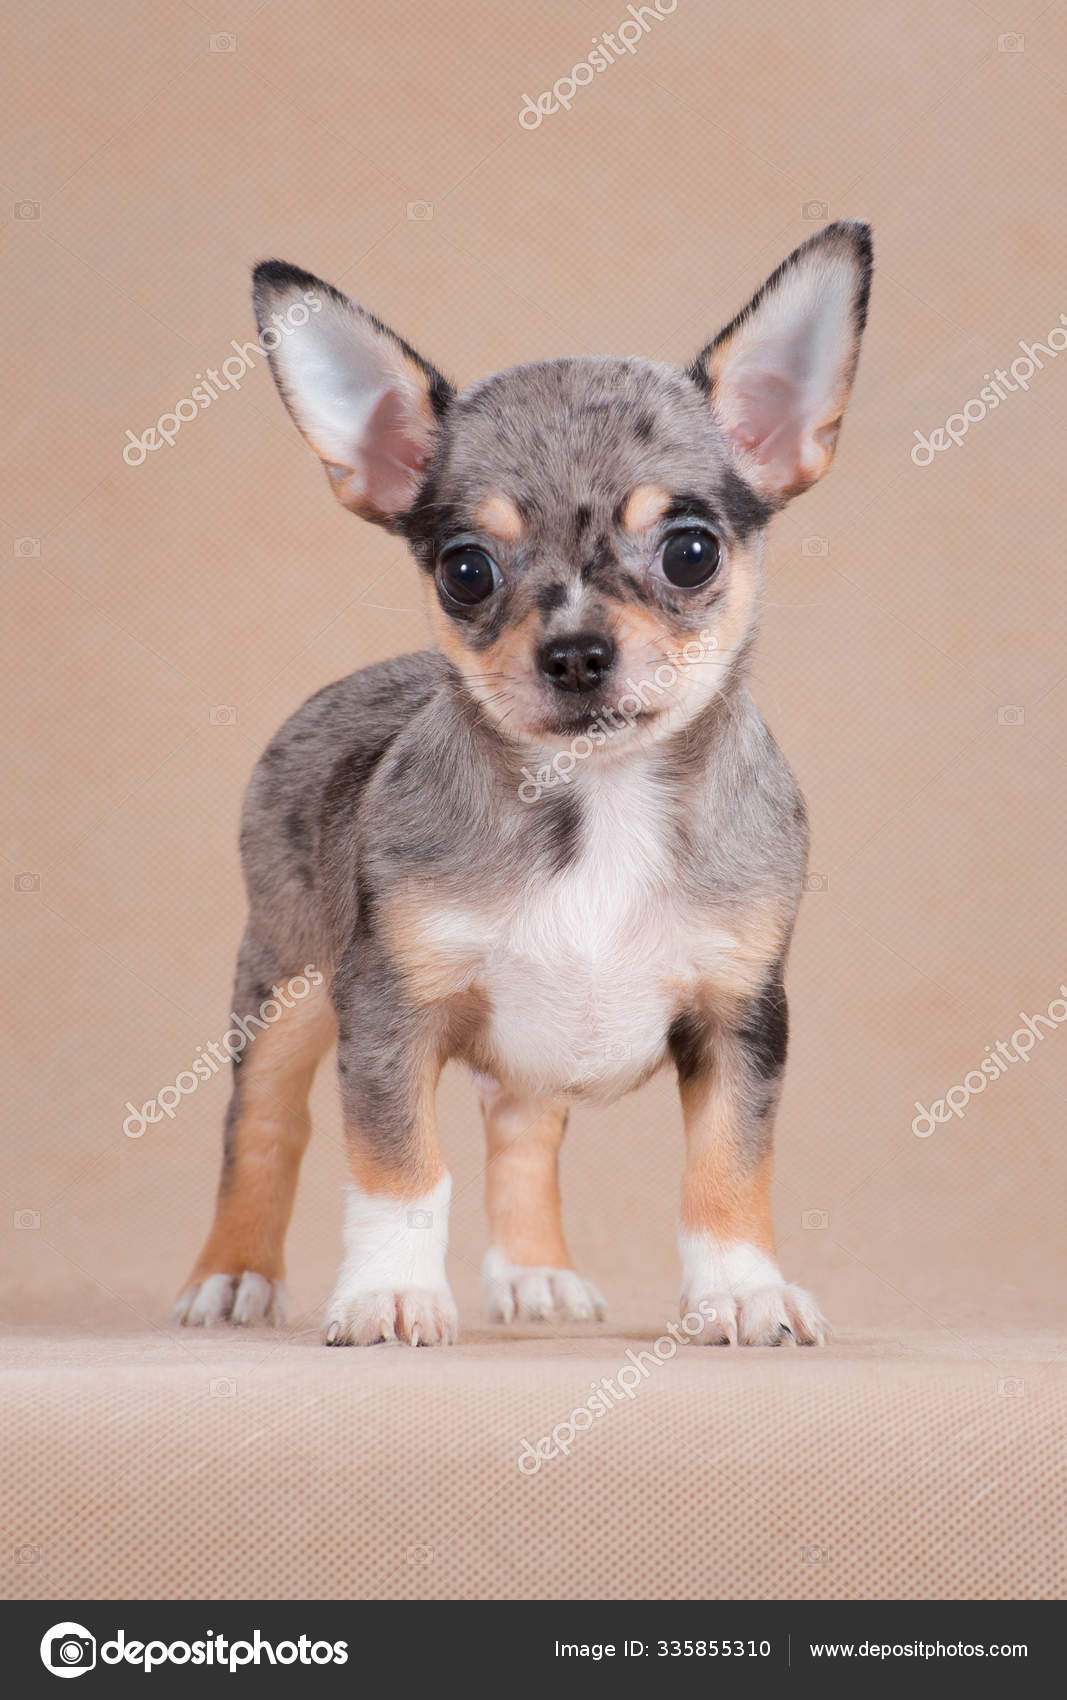 Chihuahua Puppy Color Merle In The Studio On A Beige Background Stock Photo C Katamount 335855310